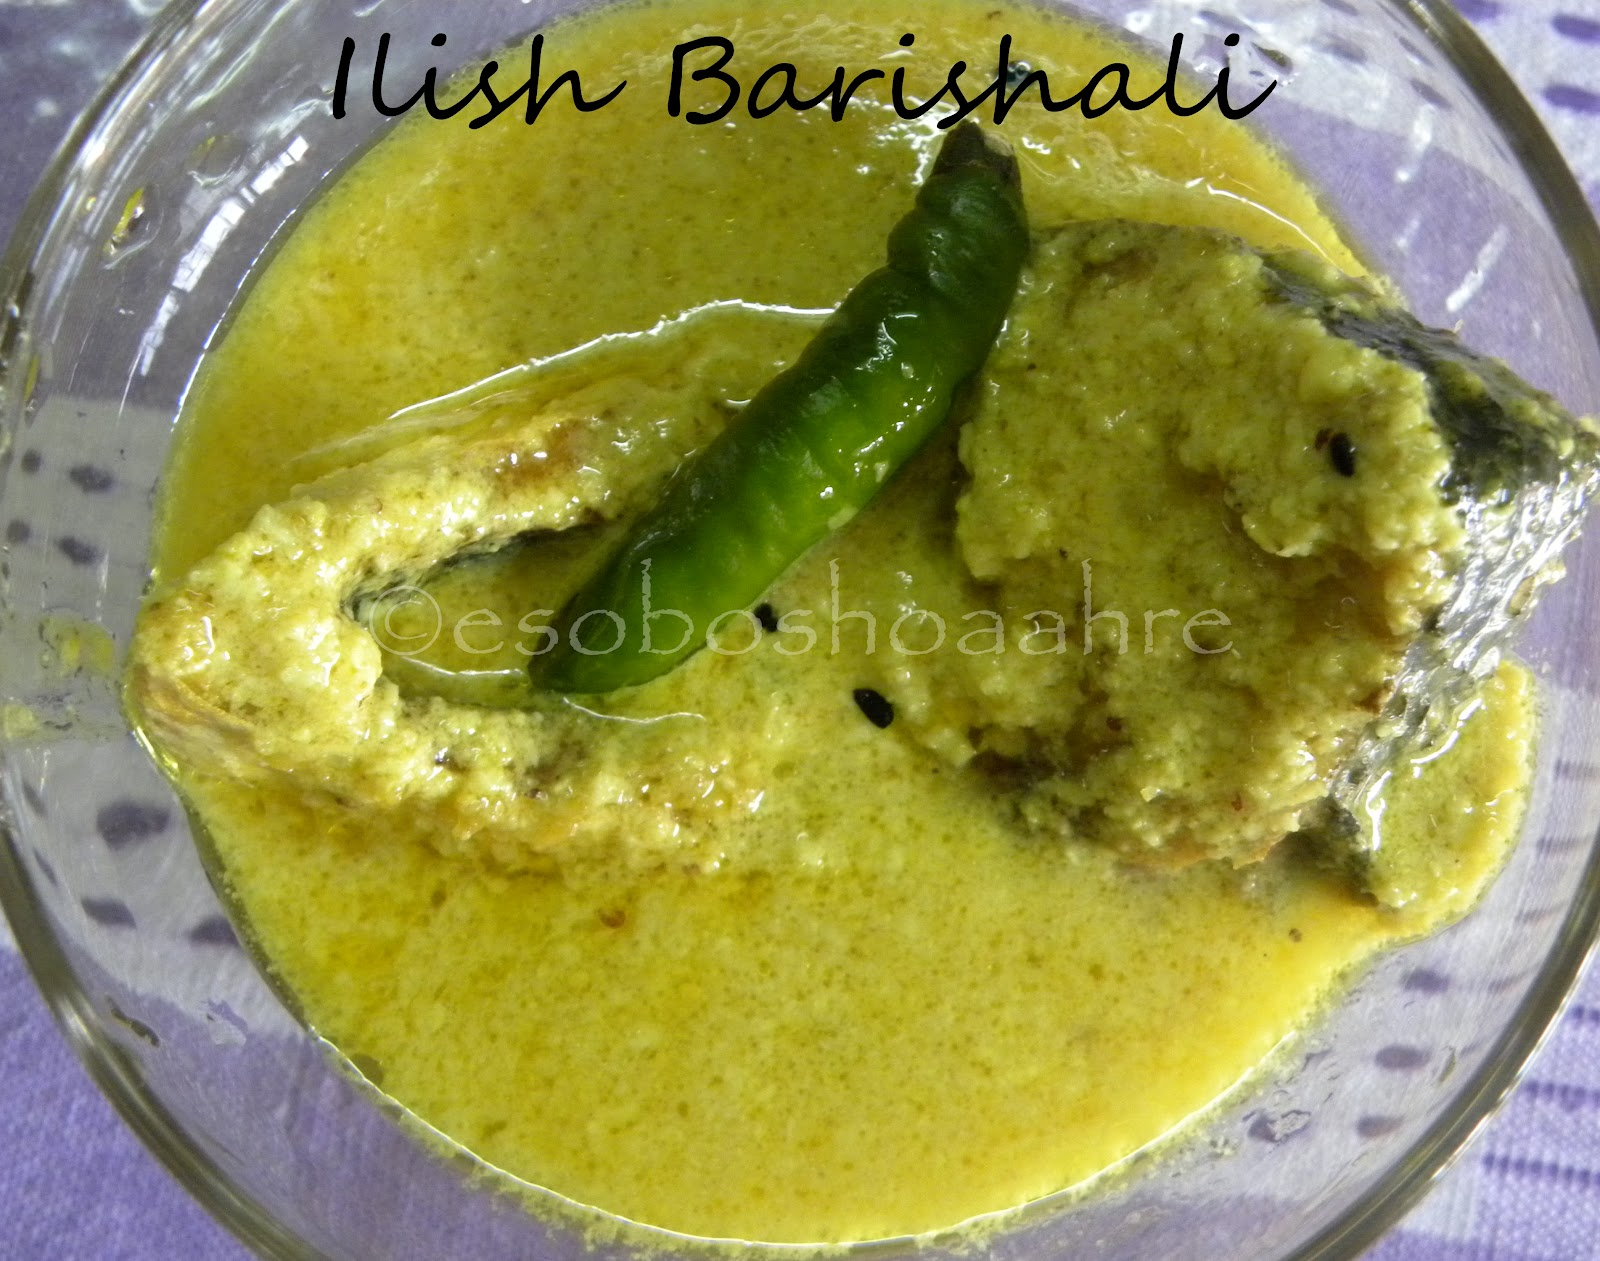 Eso bosho aahare ilish barishali so i want to share the recipe with you all hope you all would like it like me forumfinder Image collections